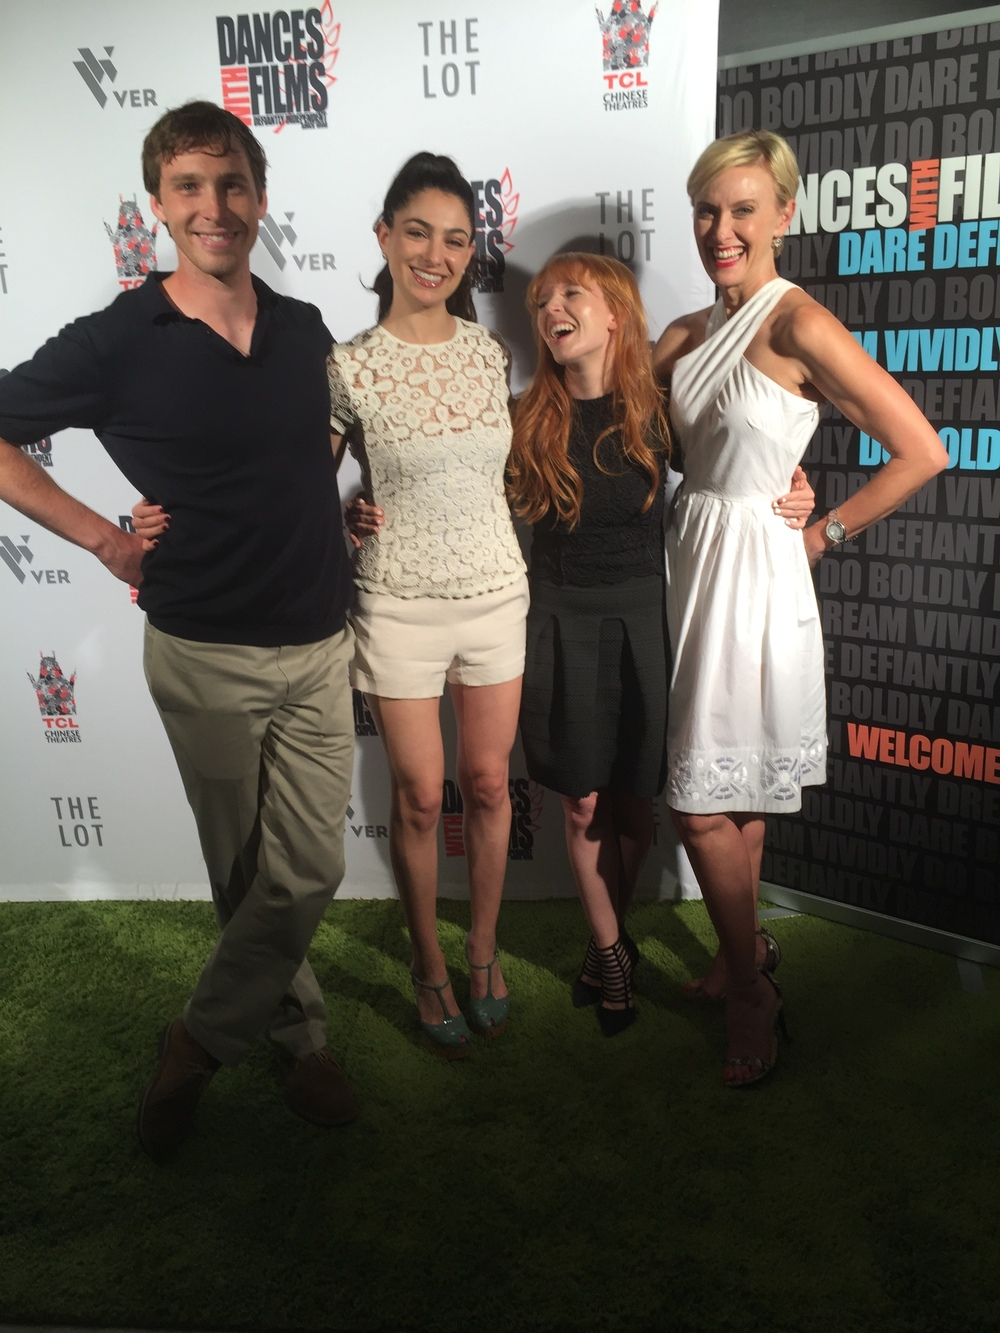 James Kelly, Giuliana Carullo, Stef Dawson and Rachel De Benedet